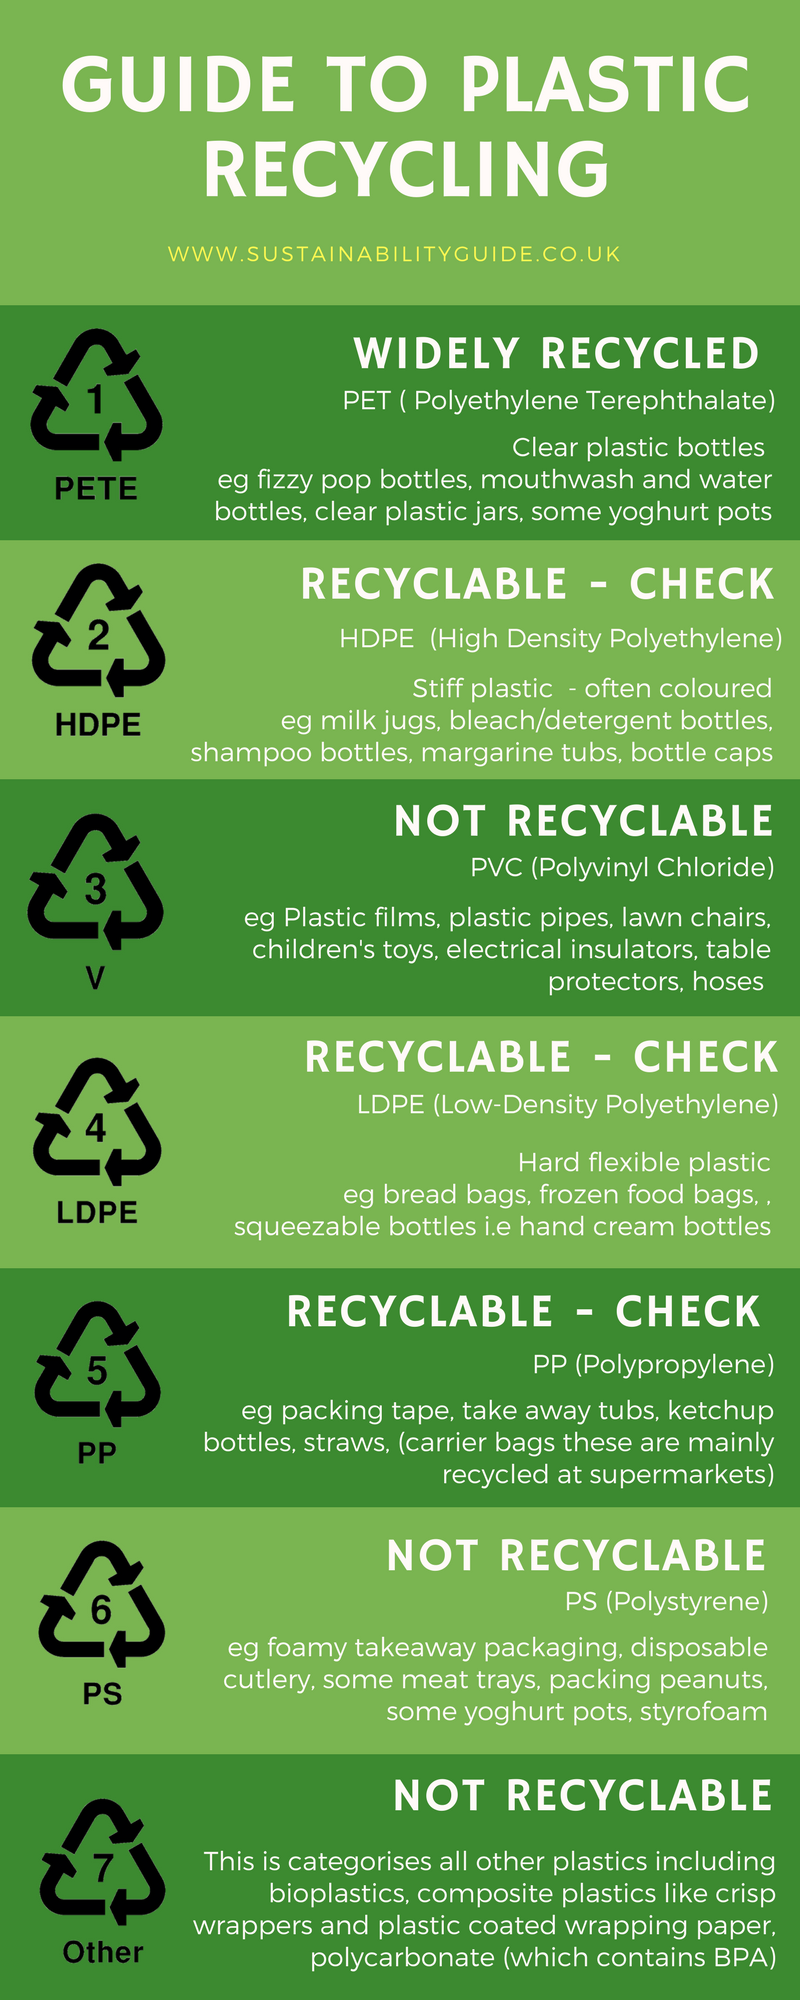 Recyclable Plastic - What plastic can I recycle